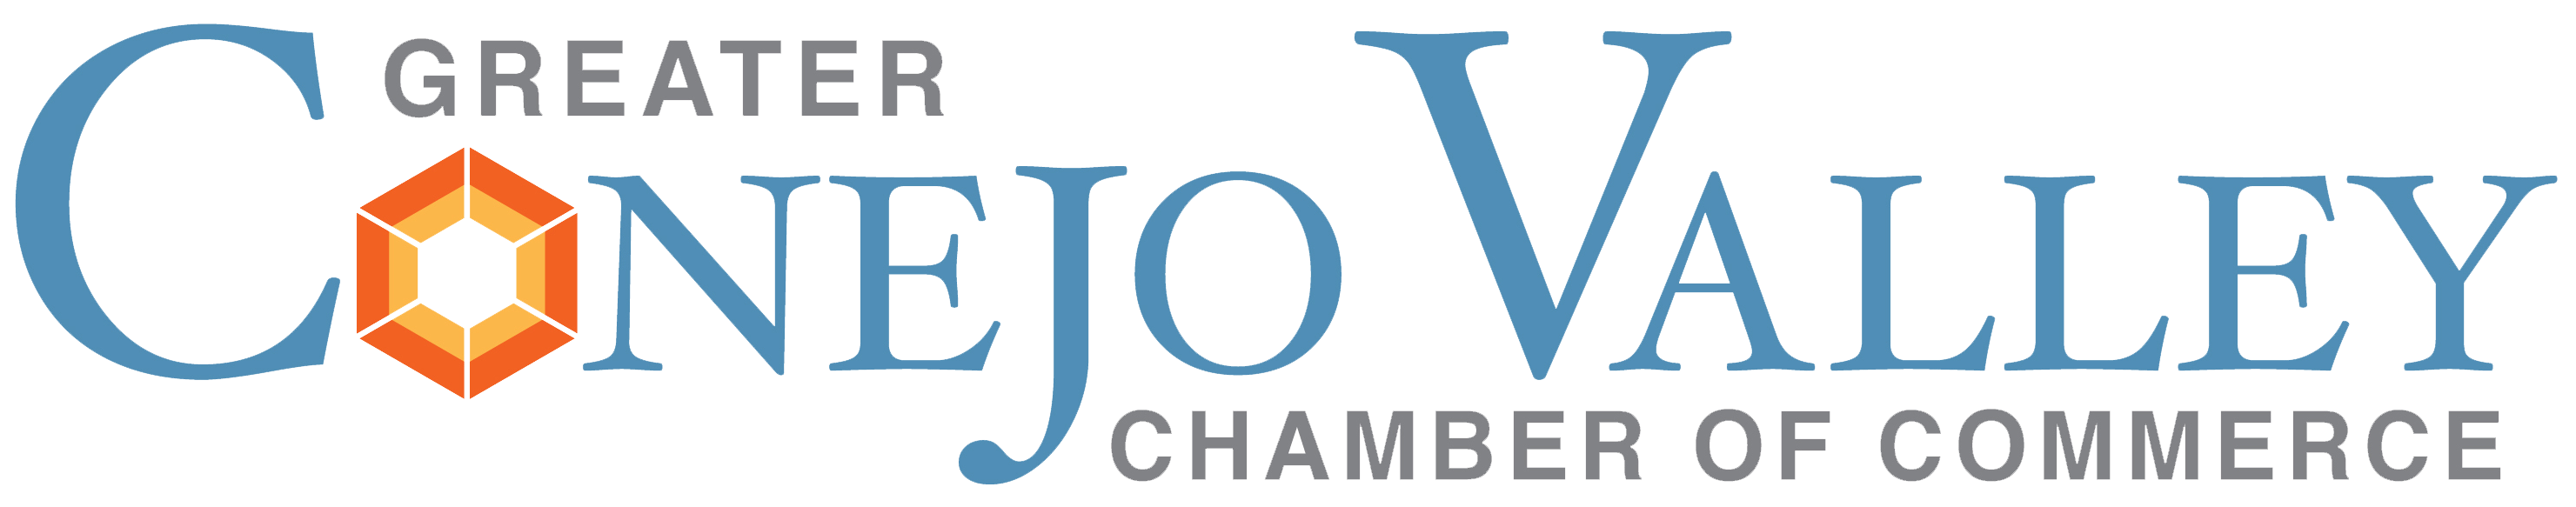 Greater Conejo Valley Chamber of Commerce